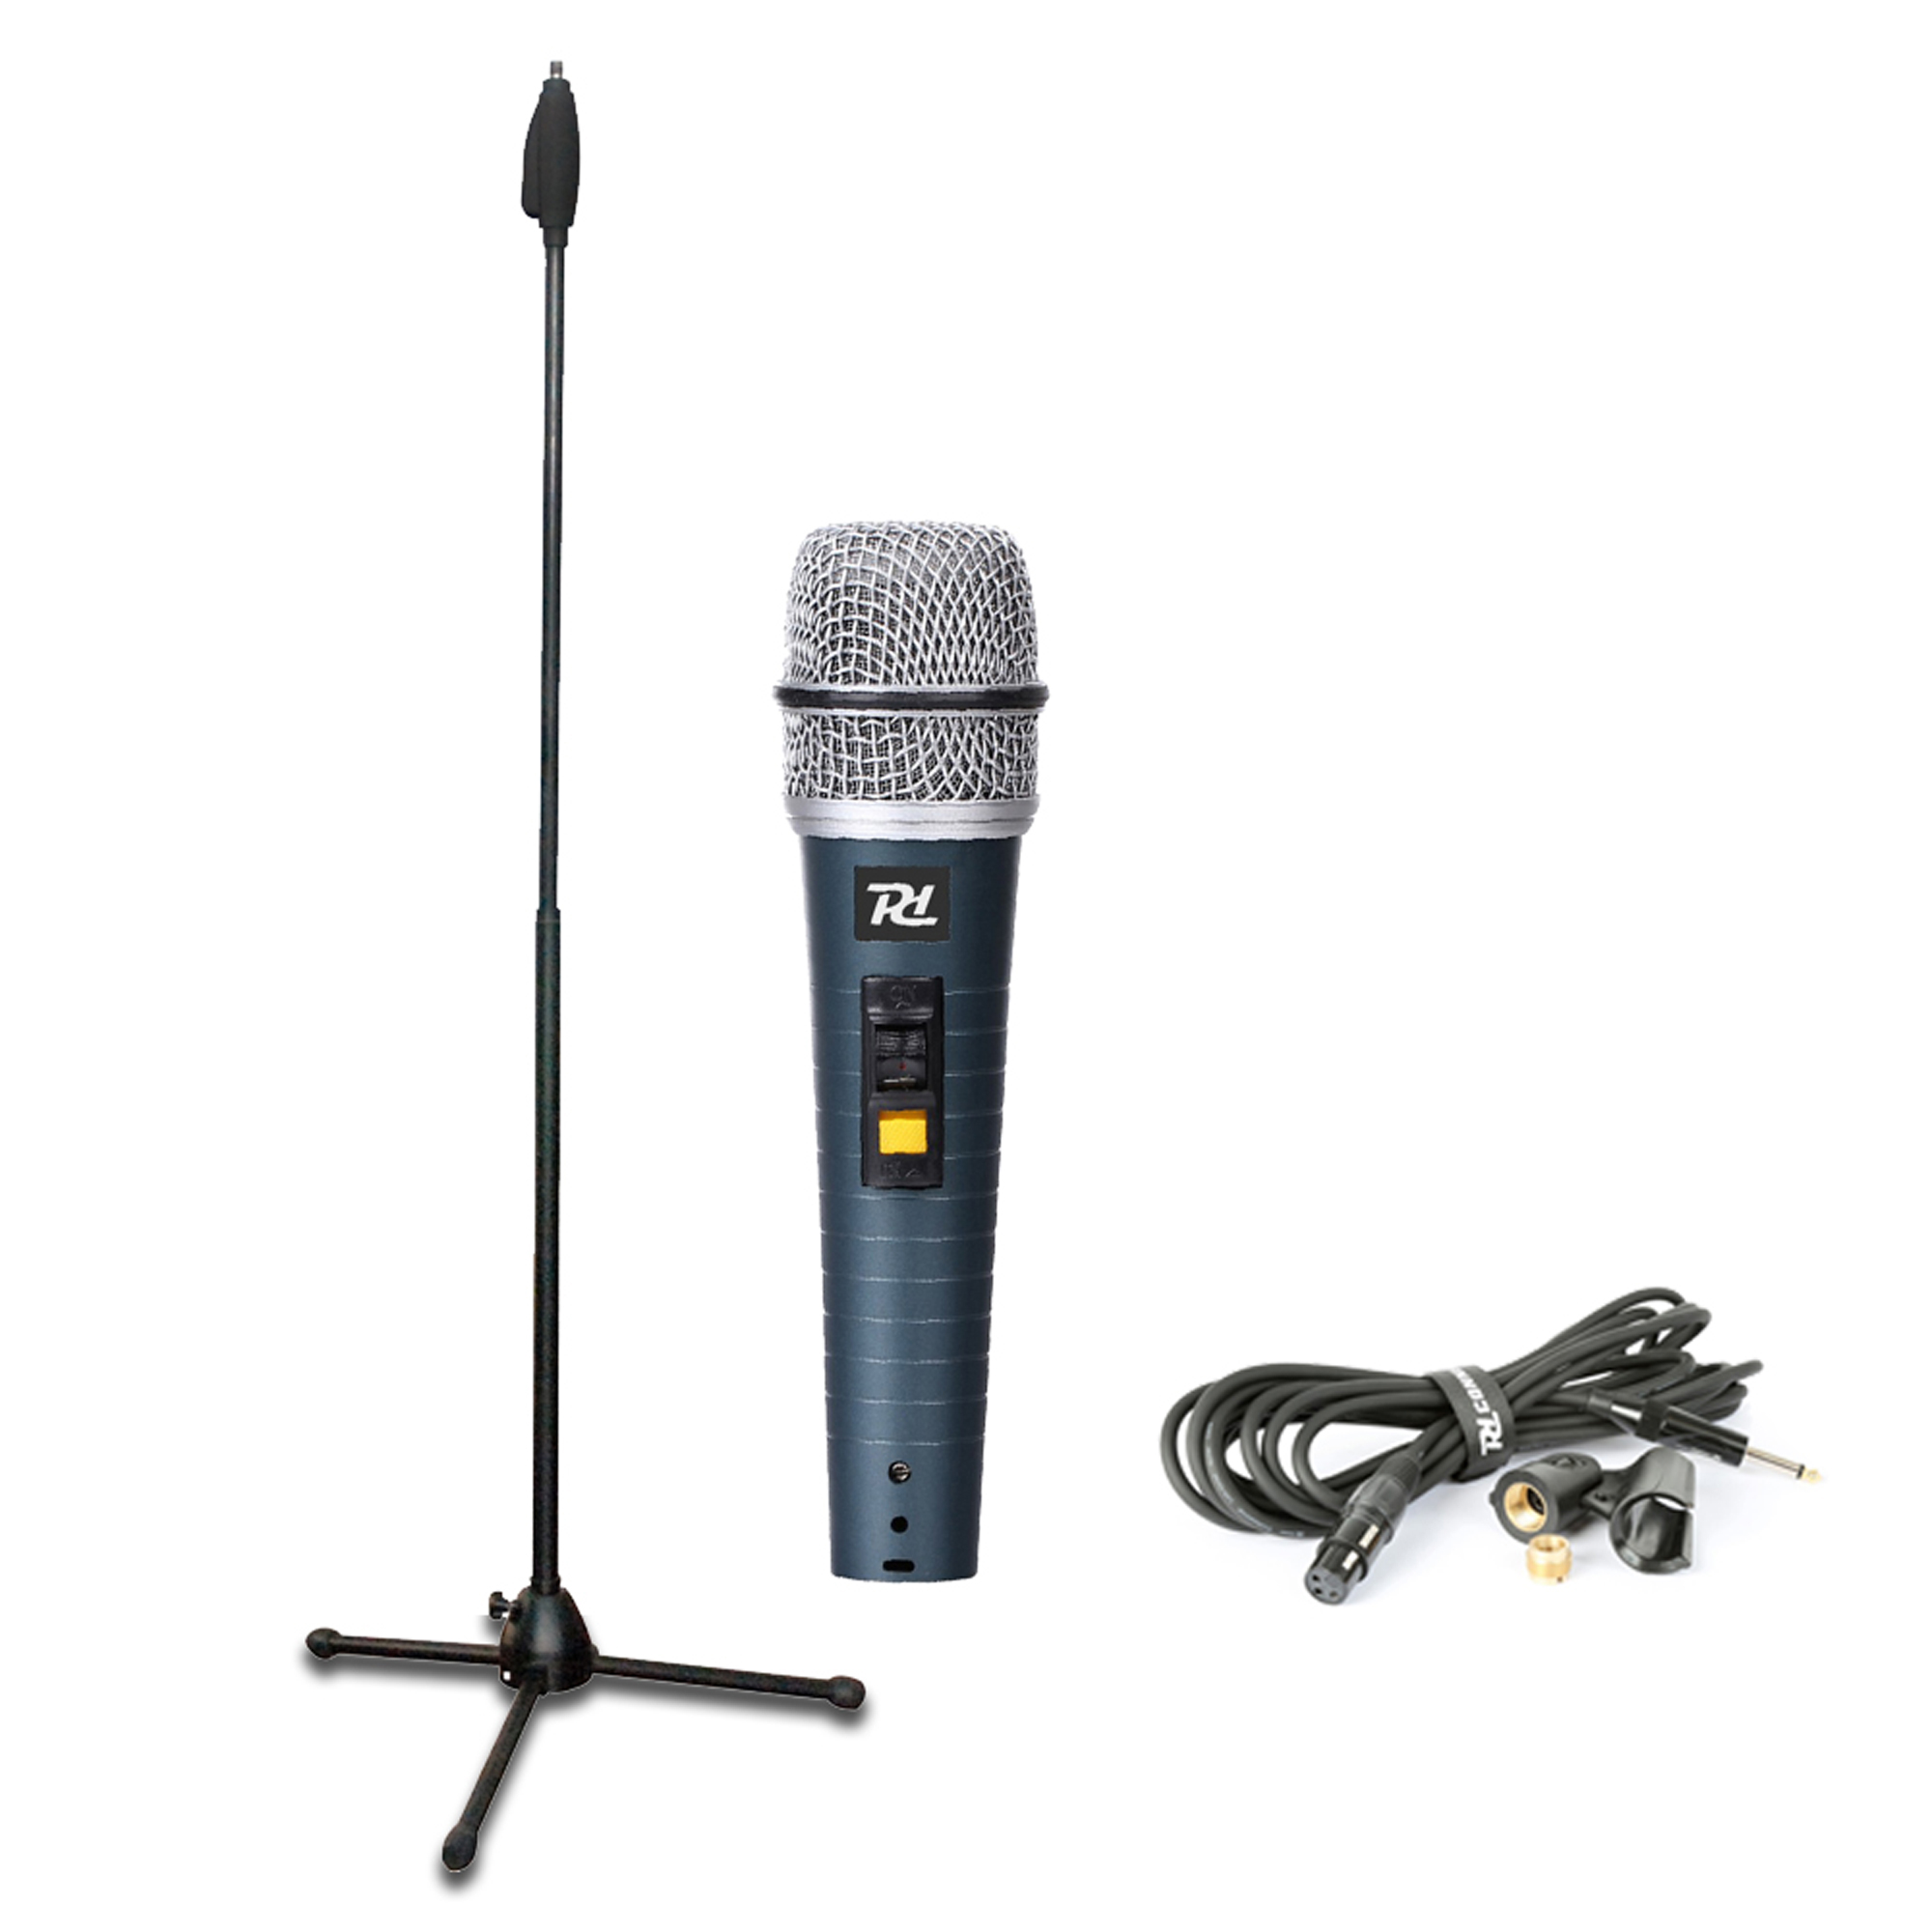 PD PDM663 Wired Handheld Microphone Kit & Adjustable Mic Stand